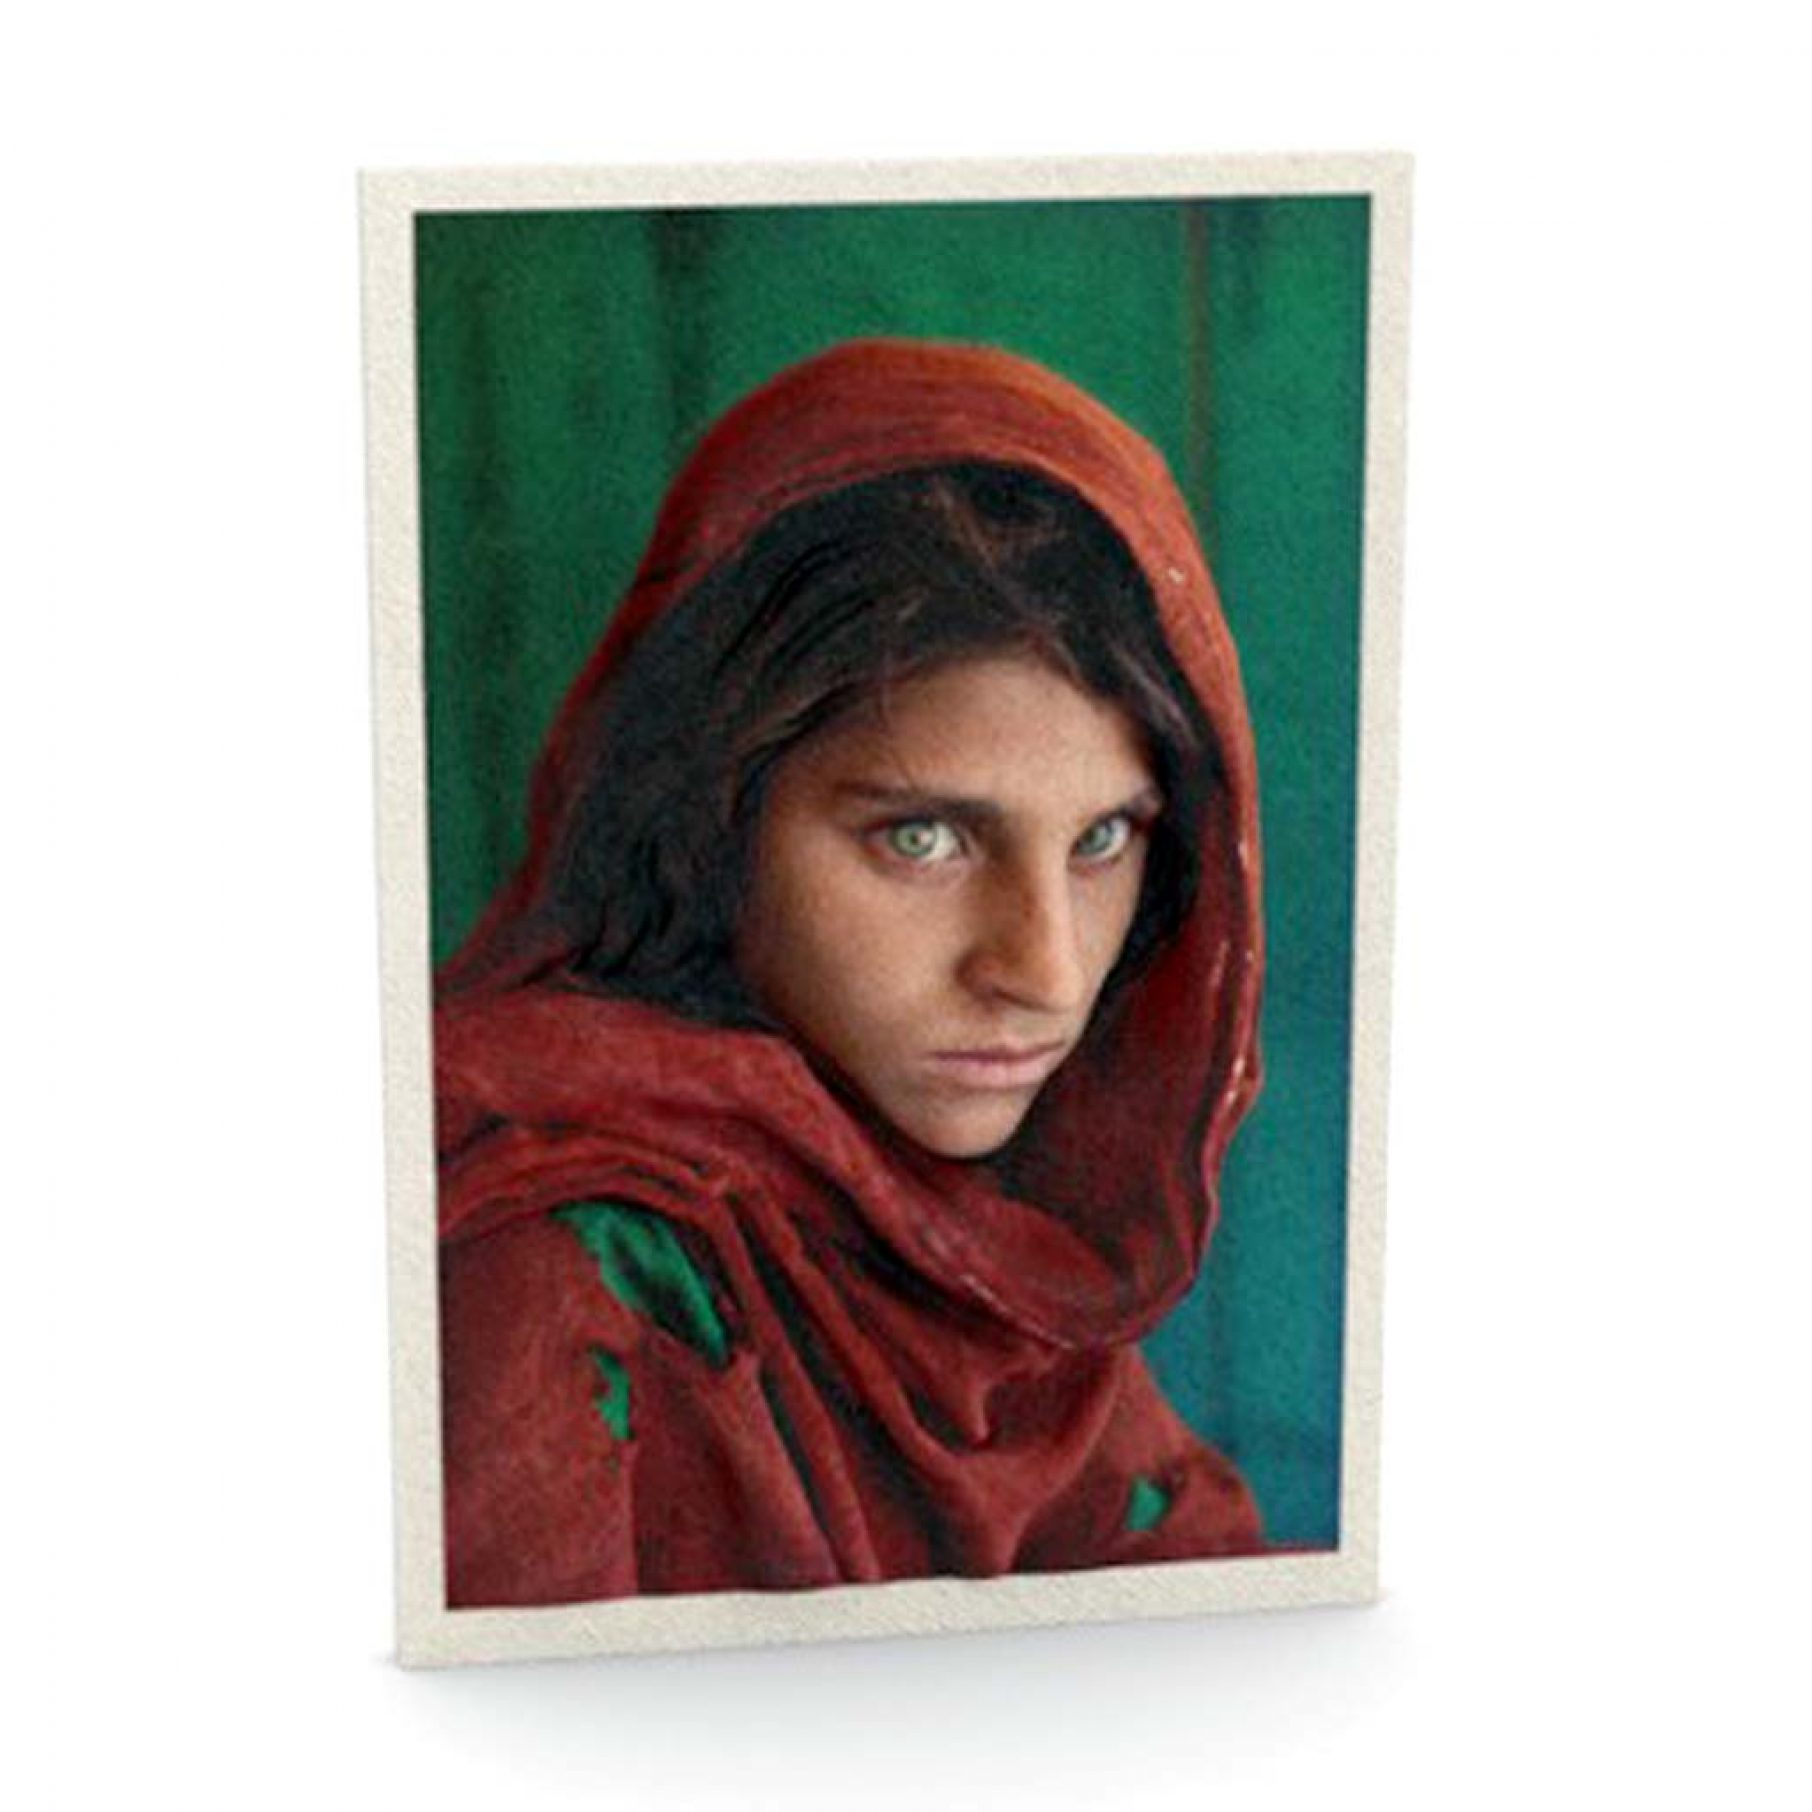 National-Geographic-Afghan-Girl-3D-Printed-1-906x906@2x